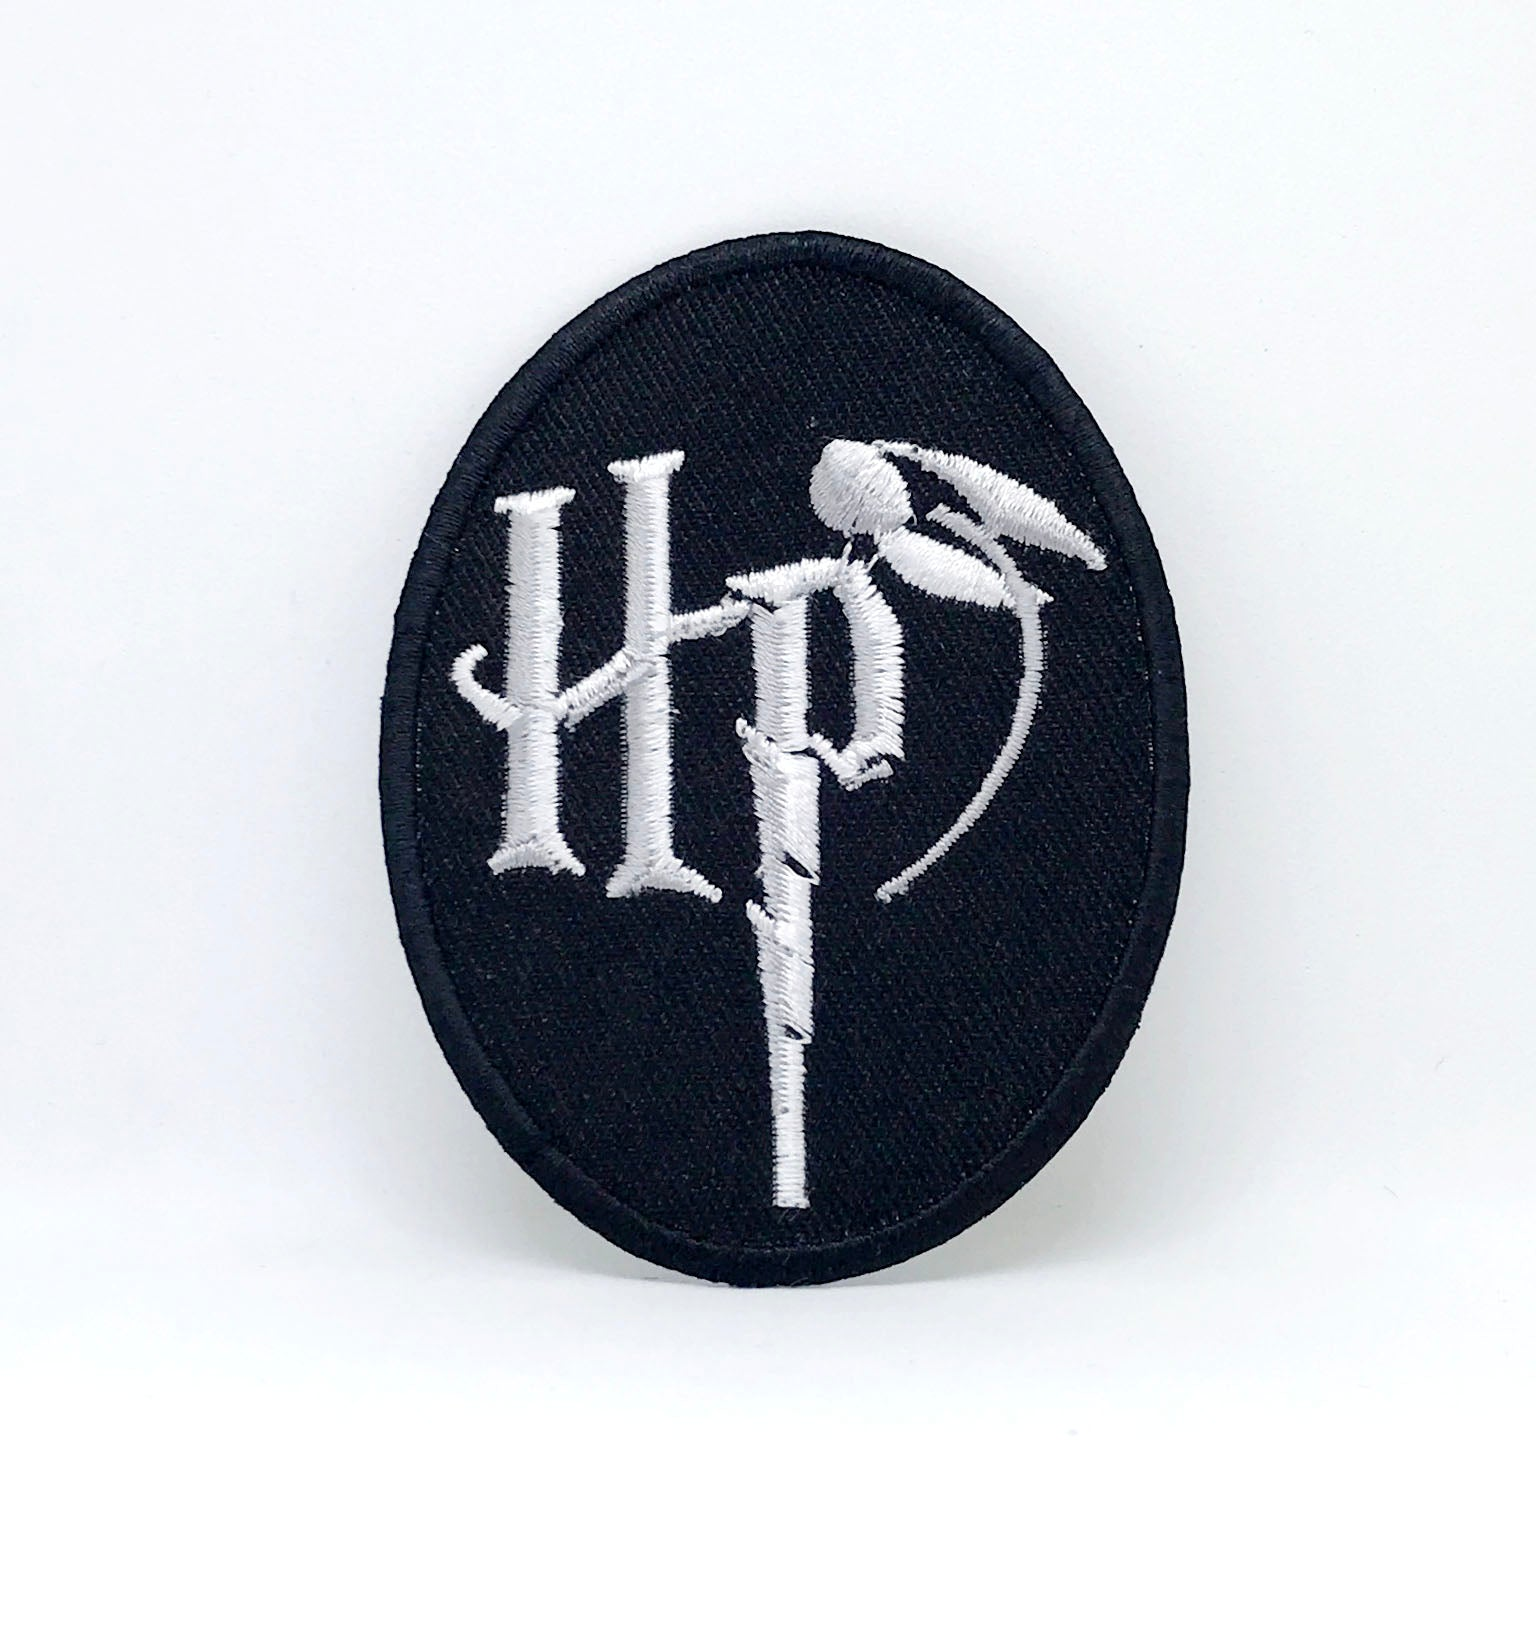 Harry Potter HP Badge Iron Sew on Embroidered Patch - Patches-Badges